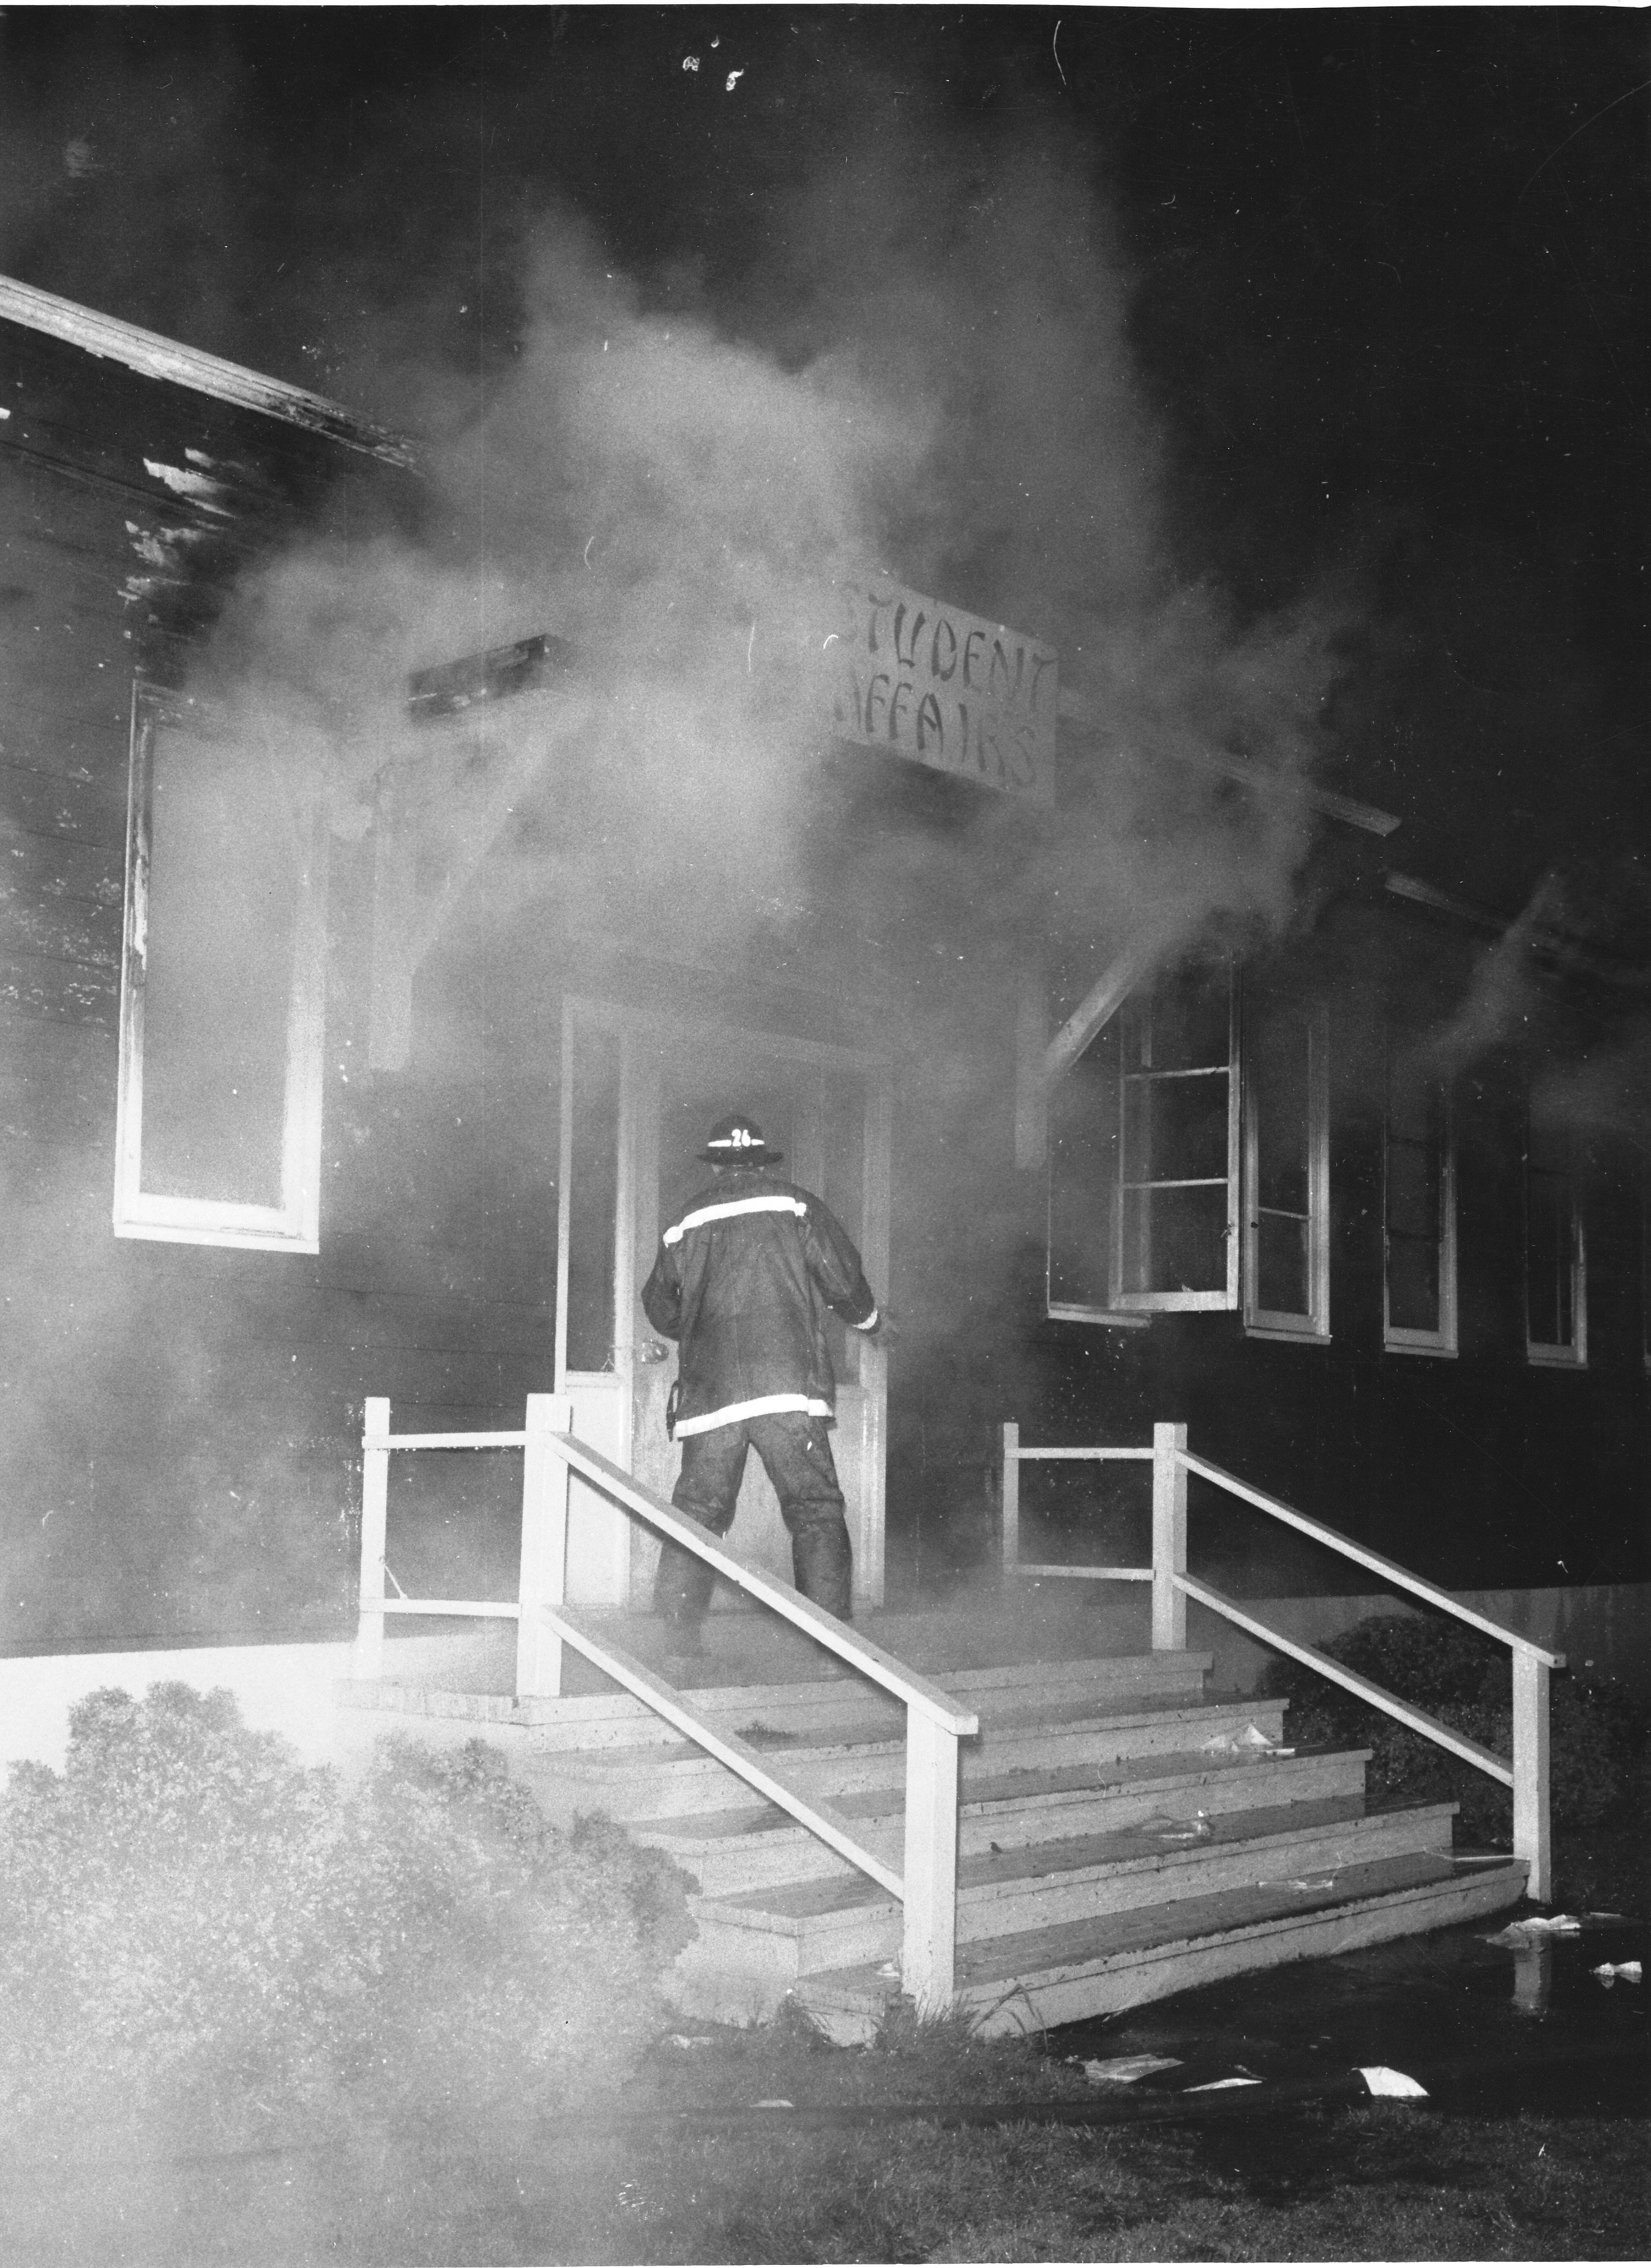 Student Affairs Building on fire, April 18, 1969